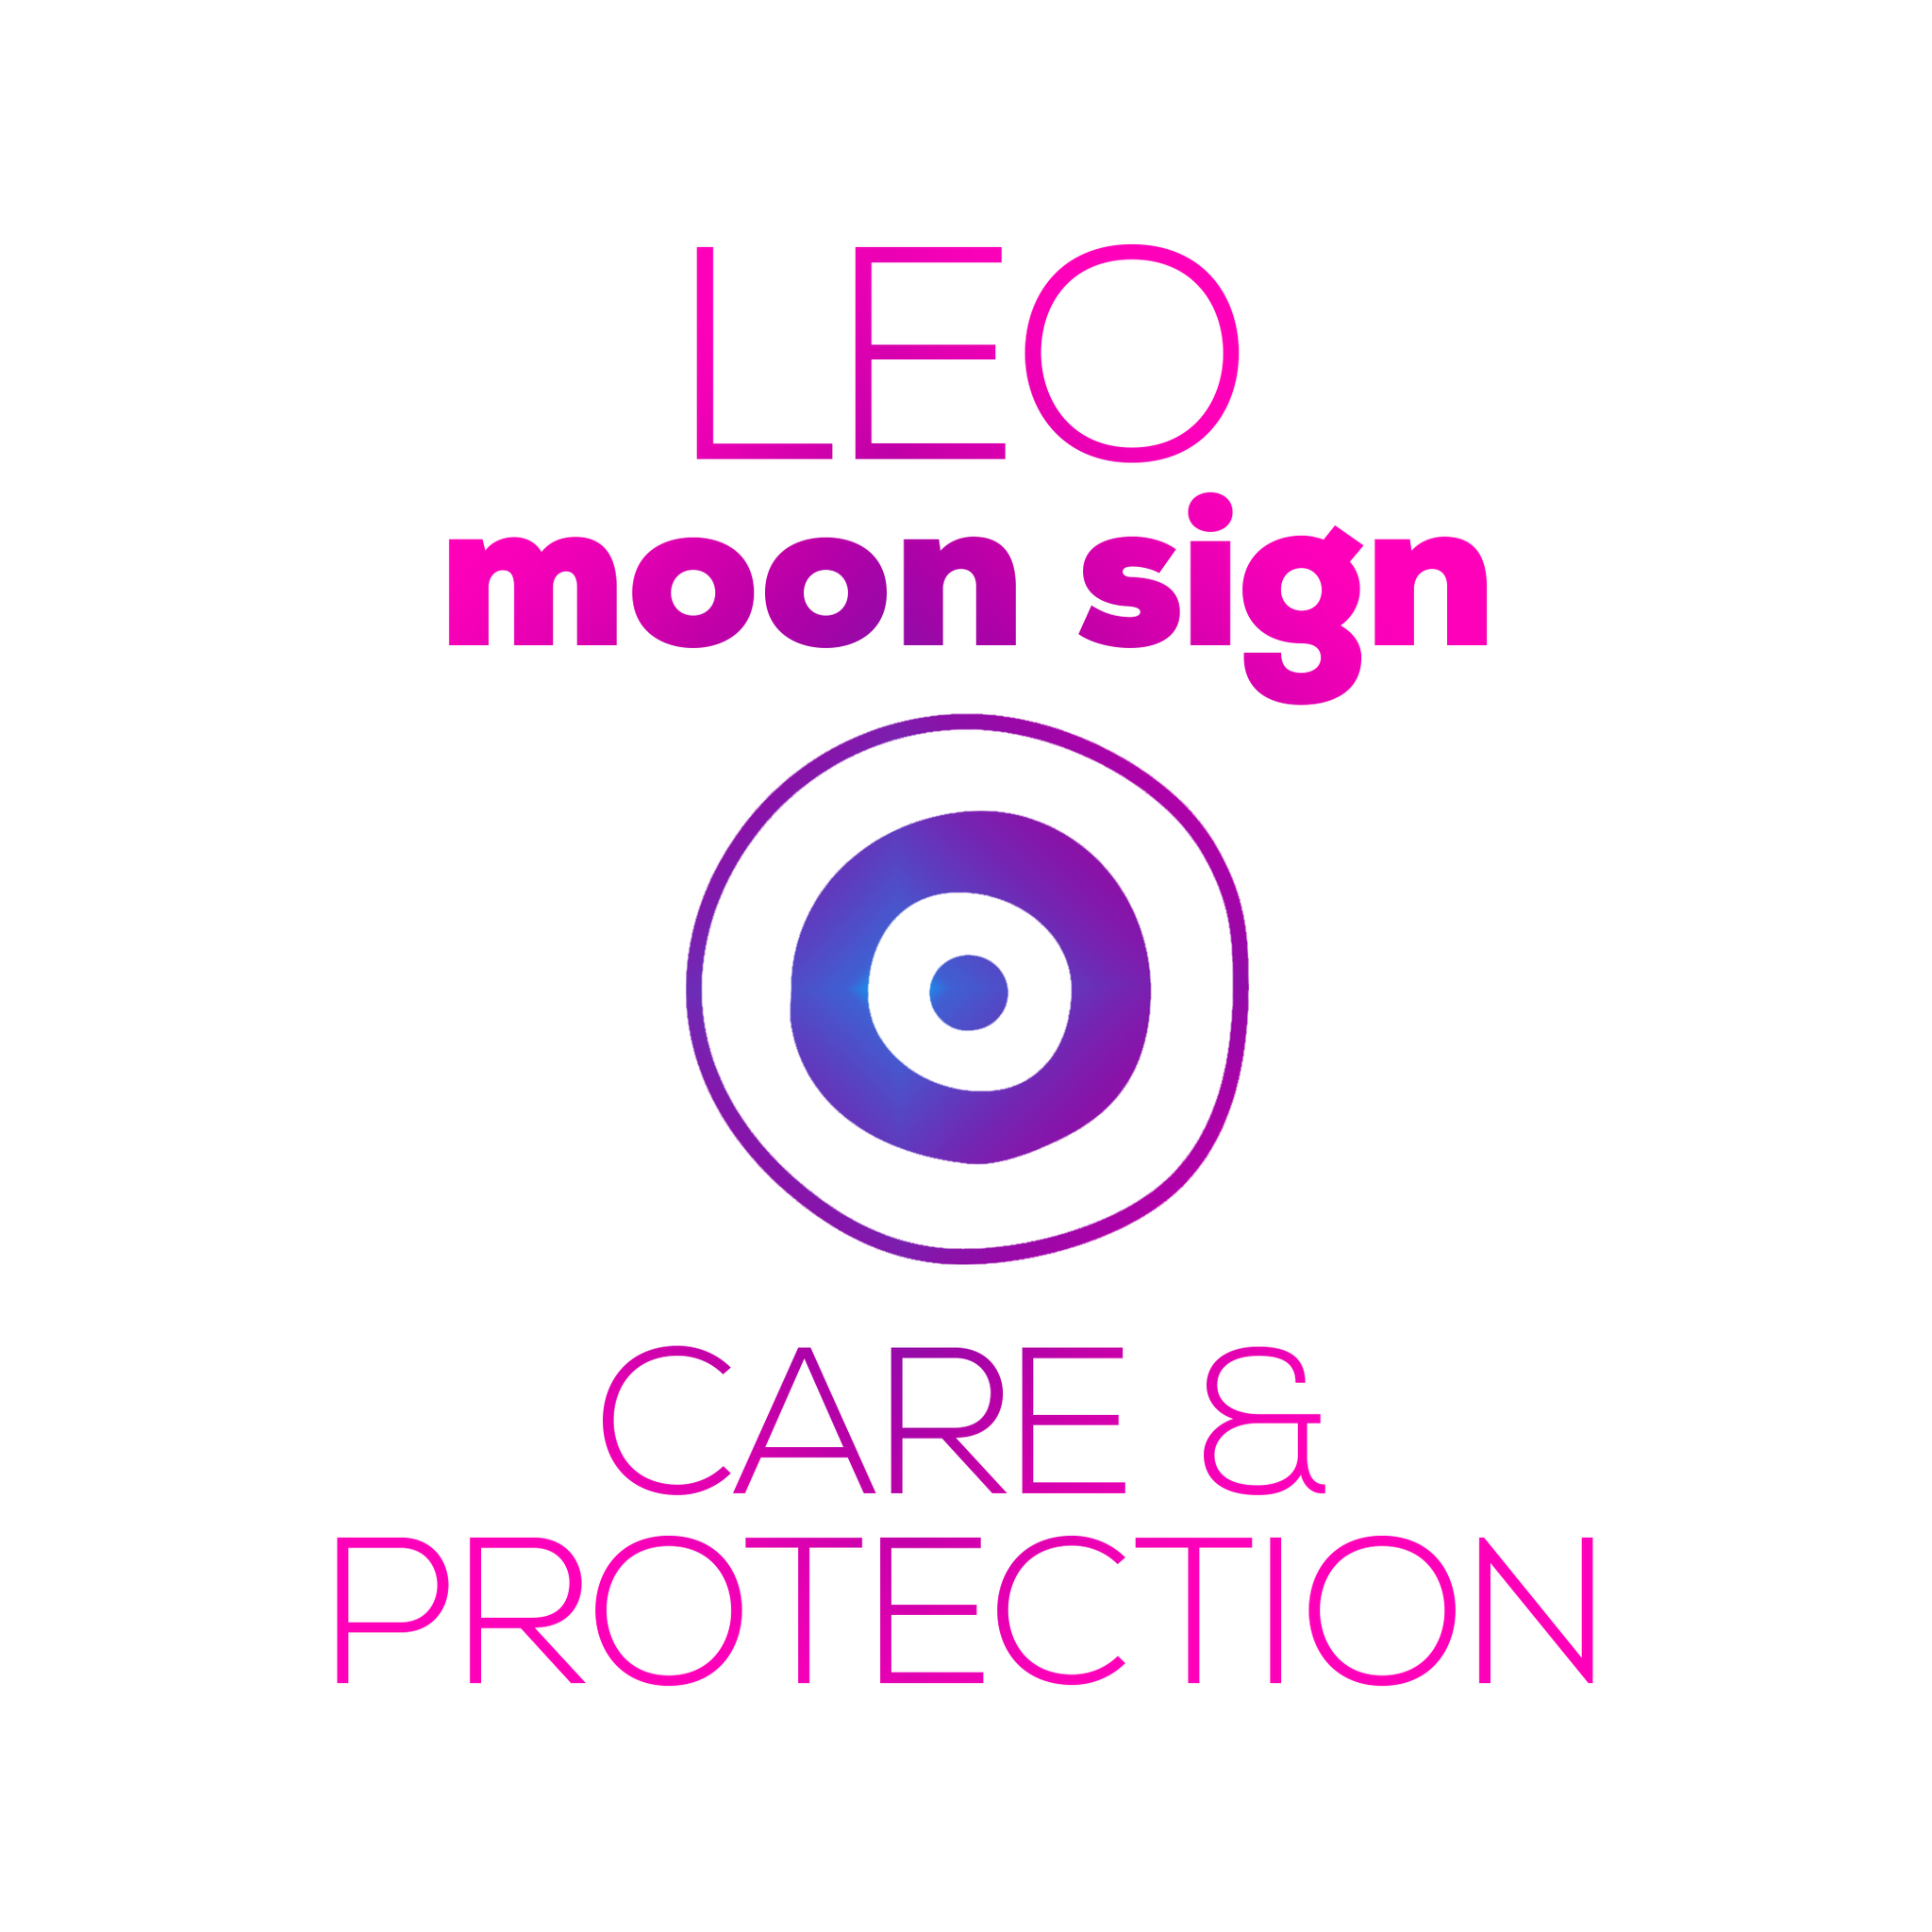 Care + Protection for Your Moon Sign - Leo